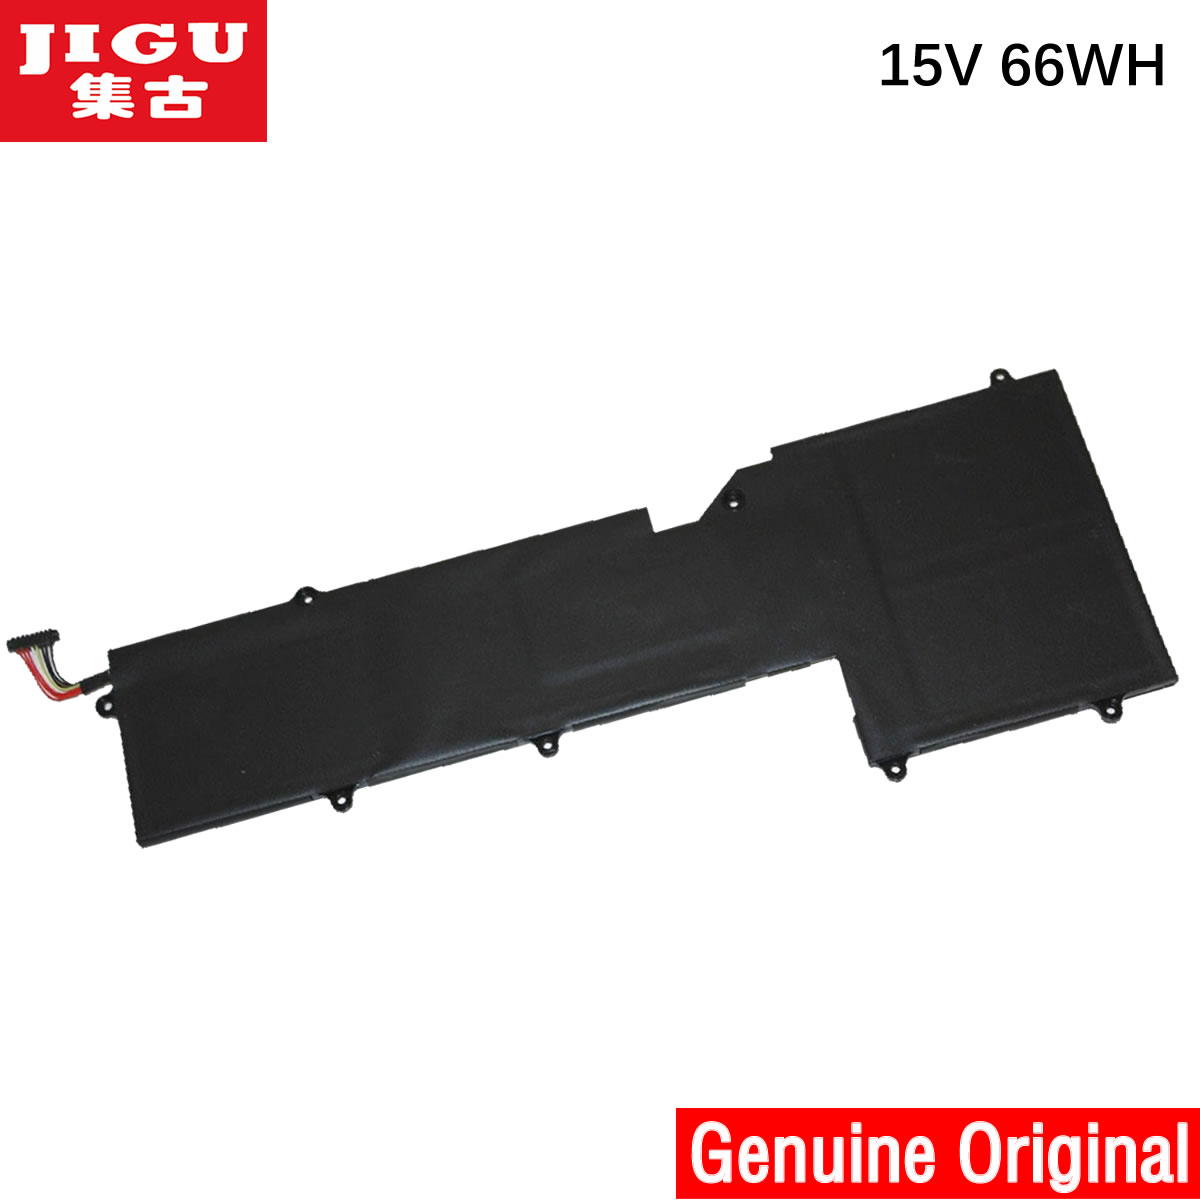 JIGU laptop battery C41N1337 FOR Asus Portable AiO PT2001 jigu laptop battery for dell 8858x 8p3yx 911md vostro 3460 3560 latitude e6120 e6420 e6520 4400mah